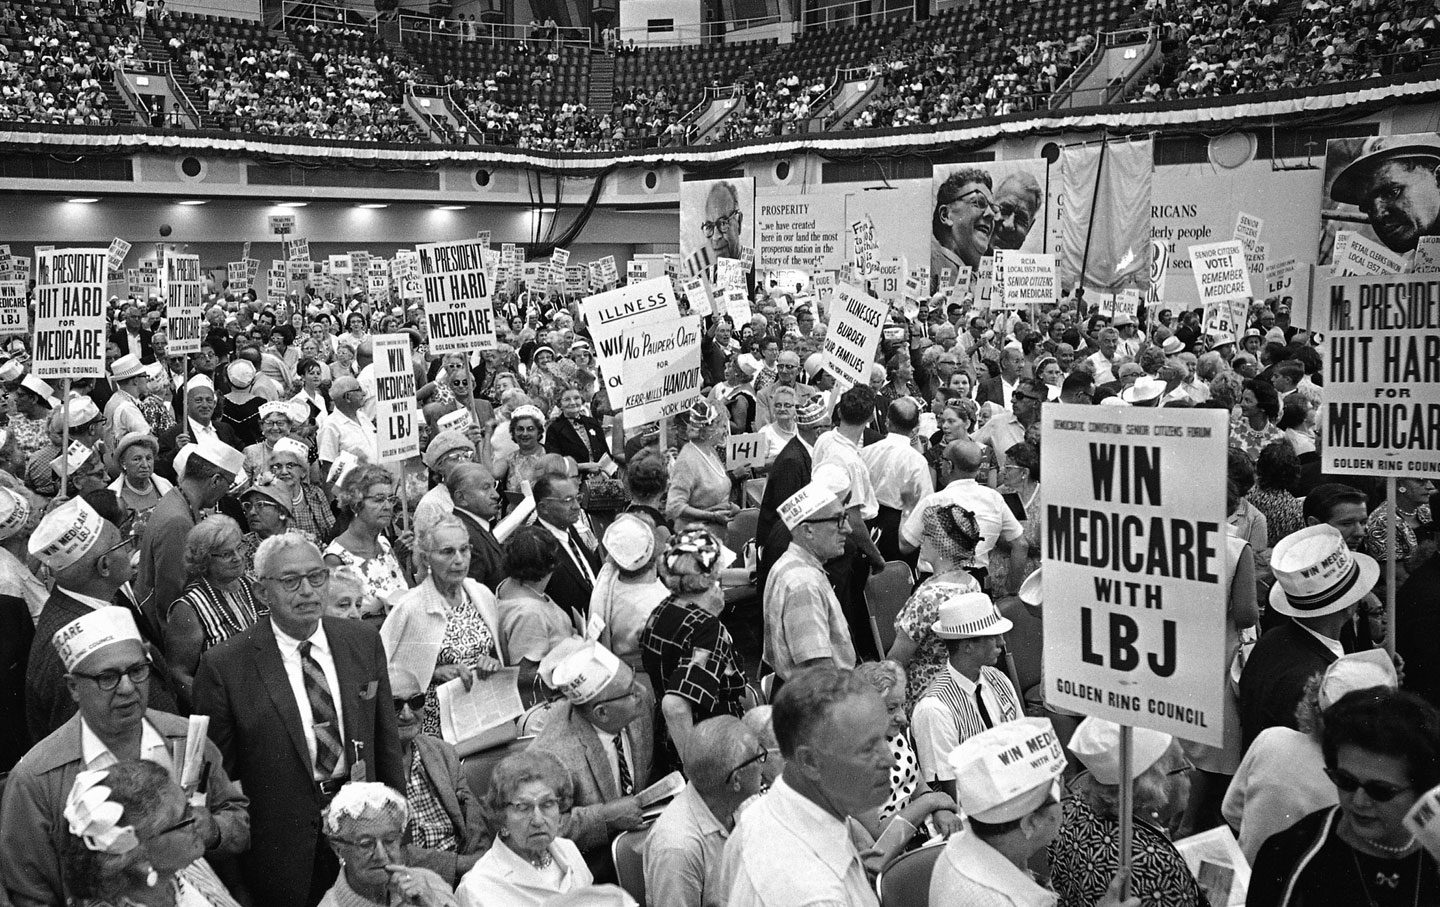 senior citizens supporting Medicare at the 1964 Democratic National Convention